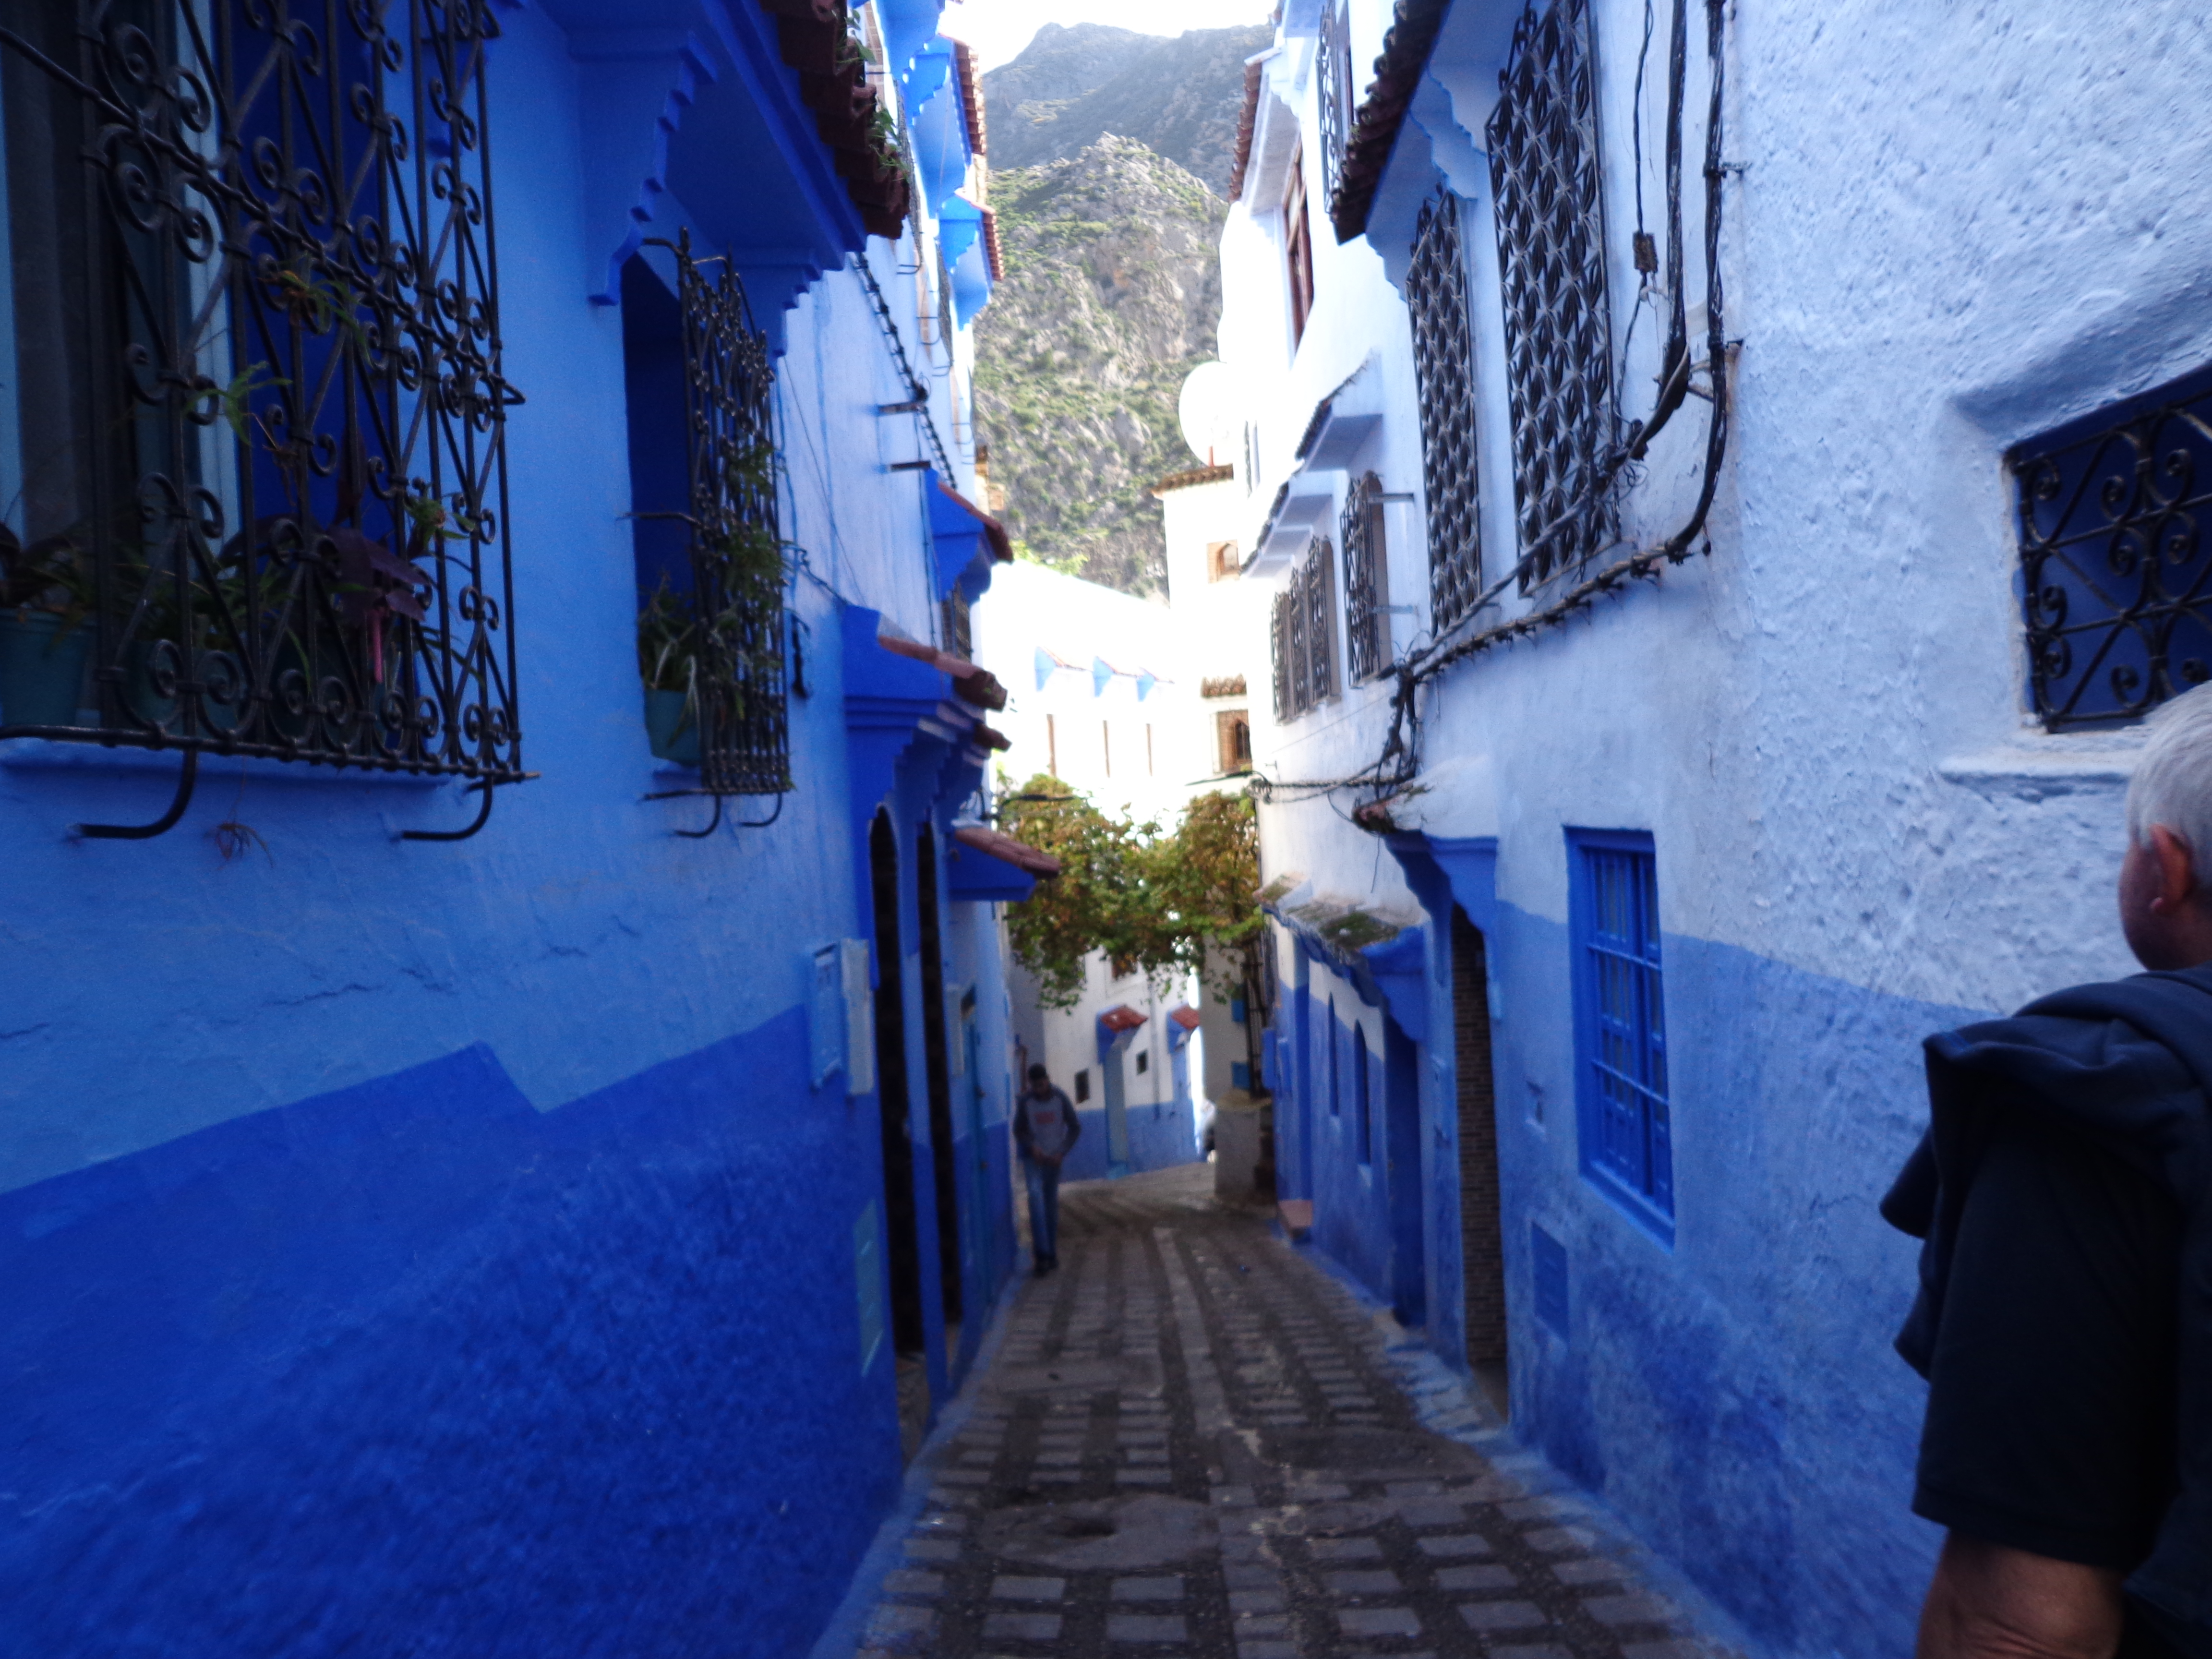 Chefchaouan the Blue Town